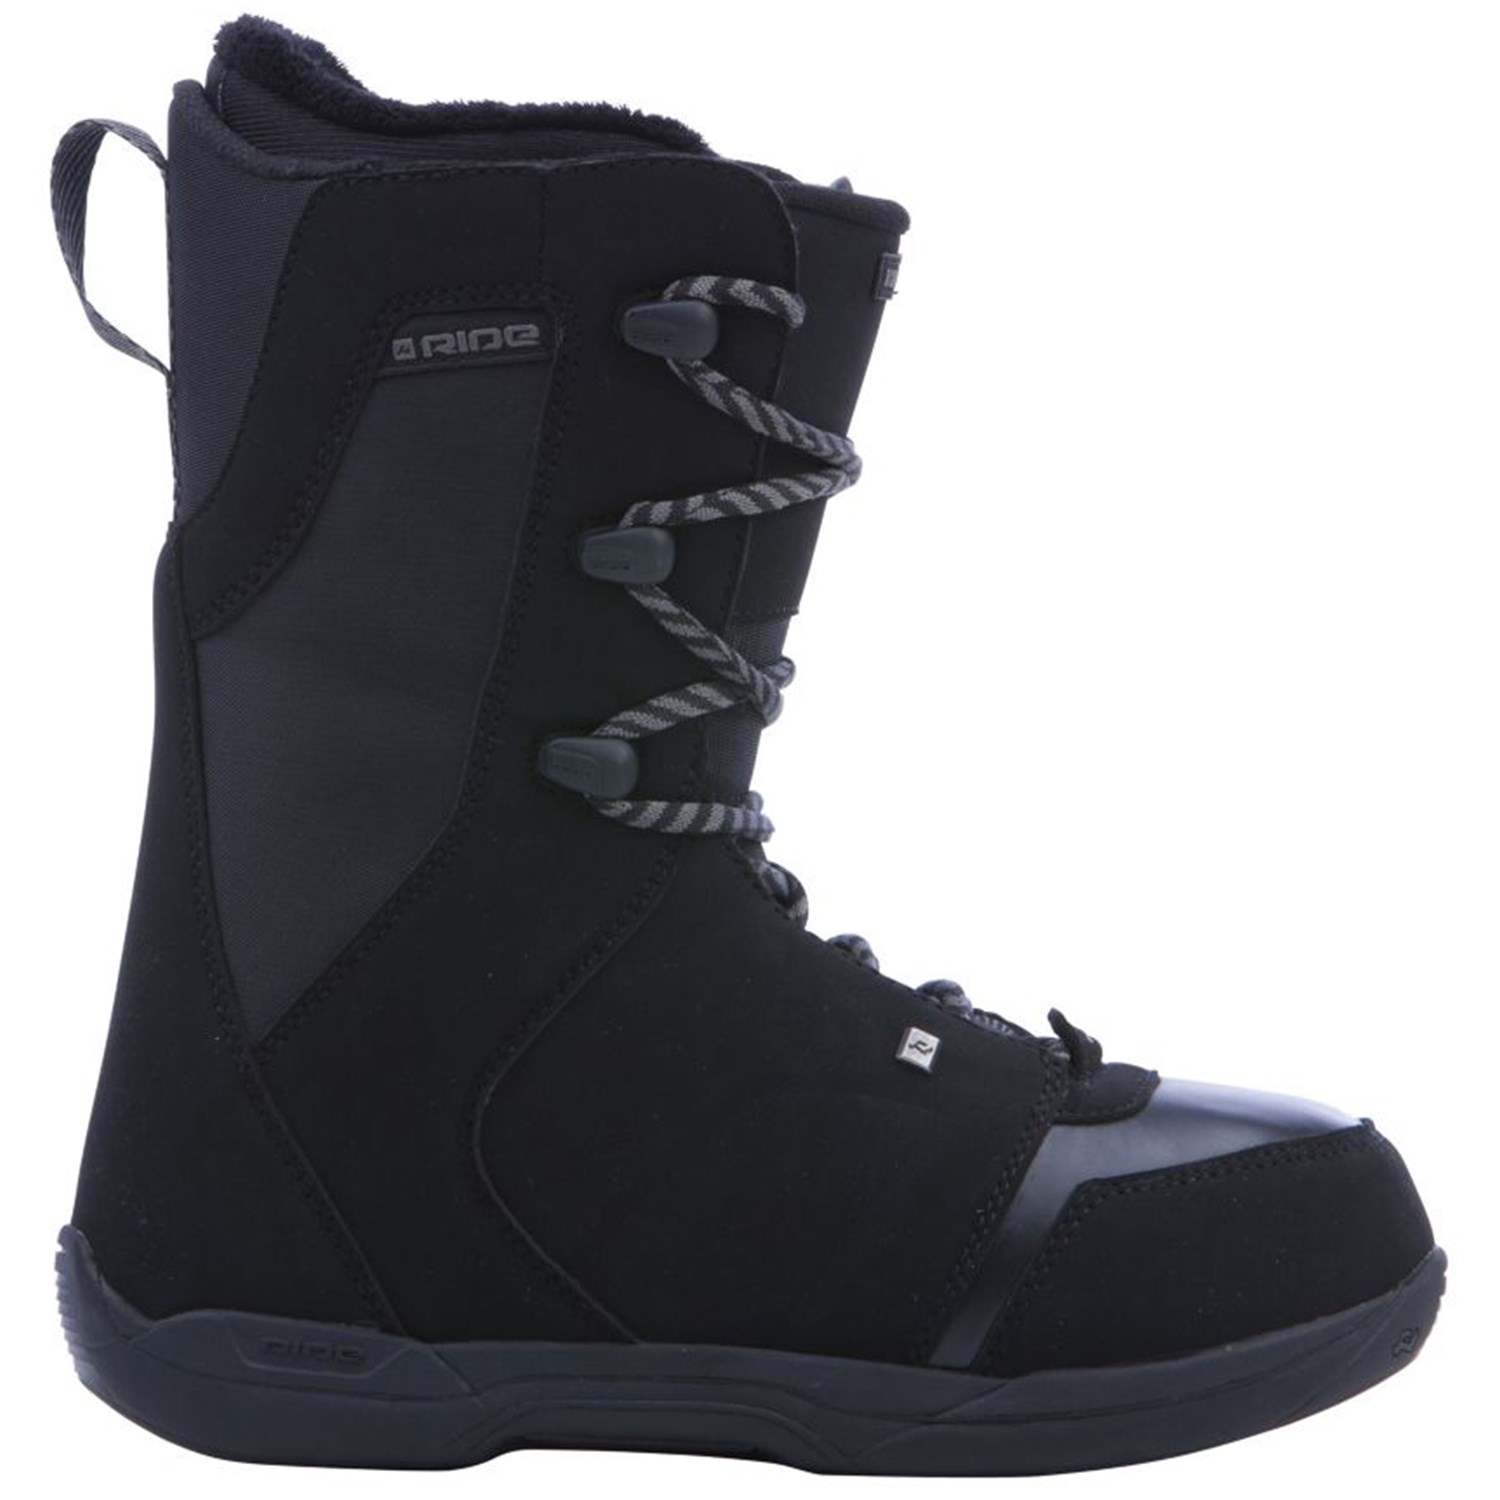 Womens Ride Snowboard Boots 49